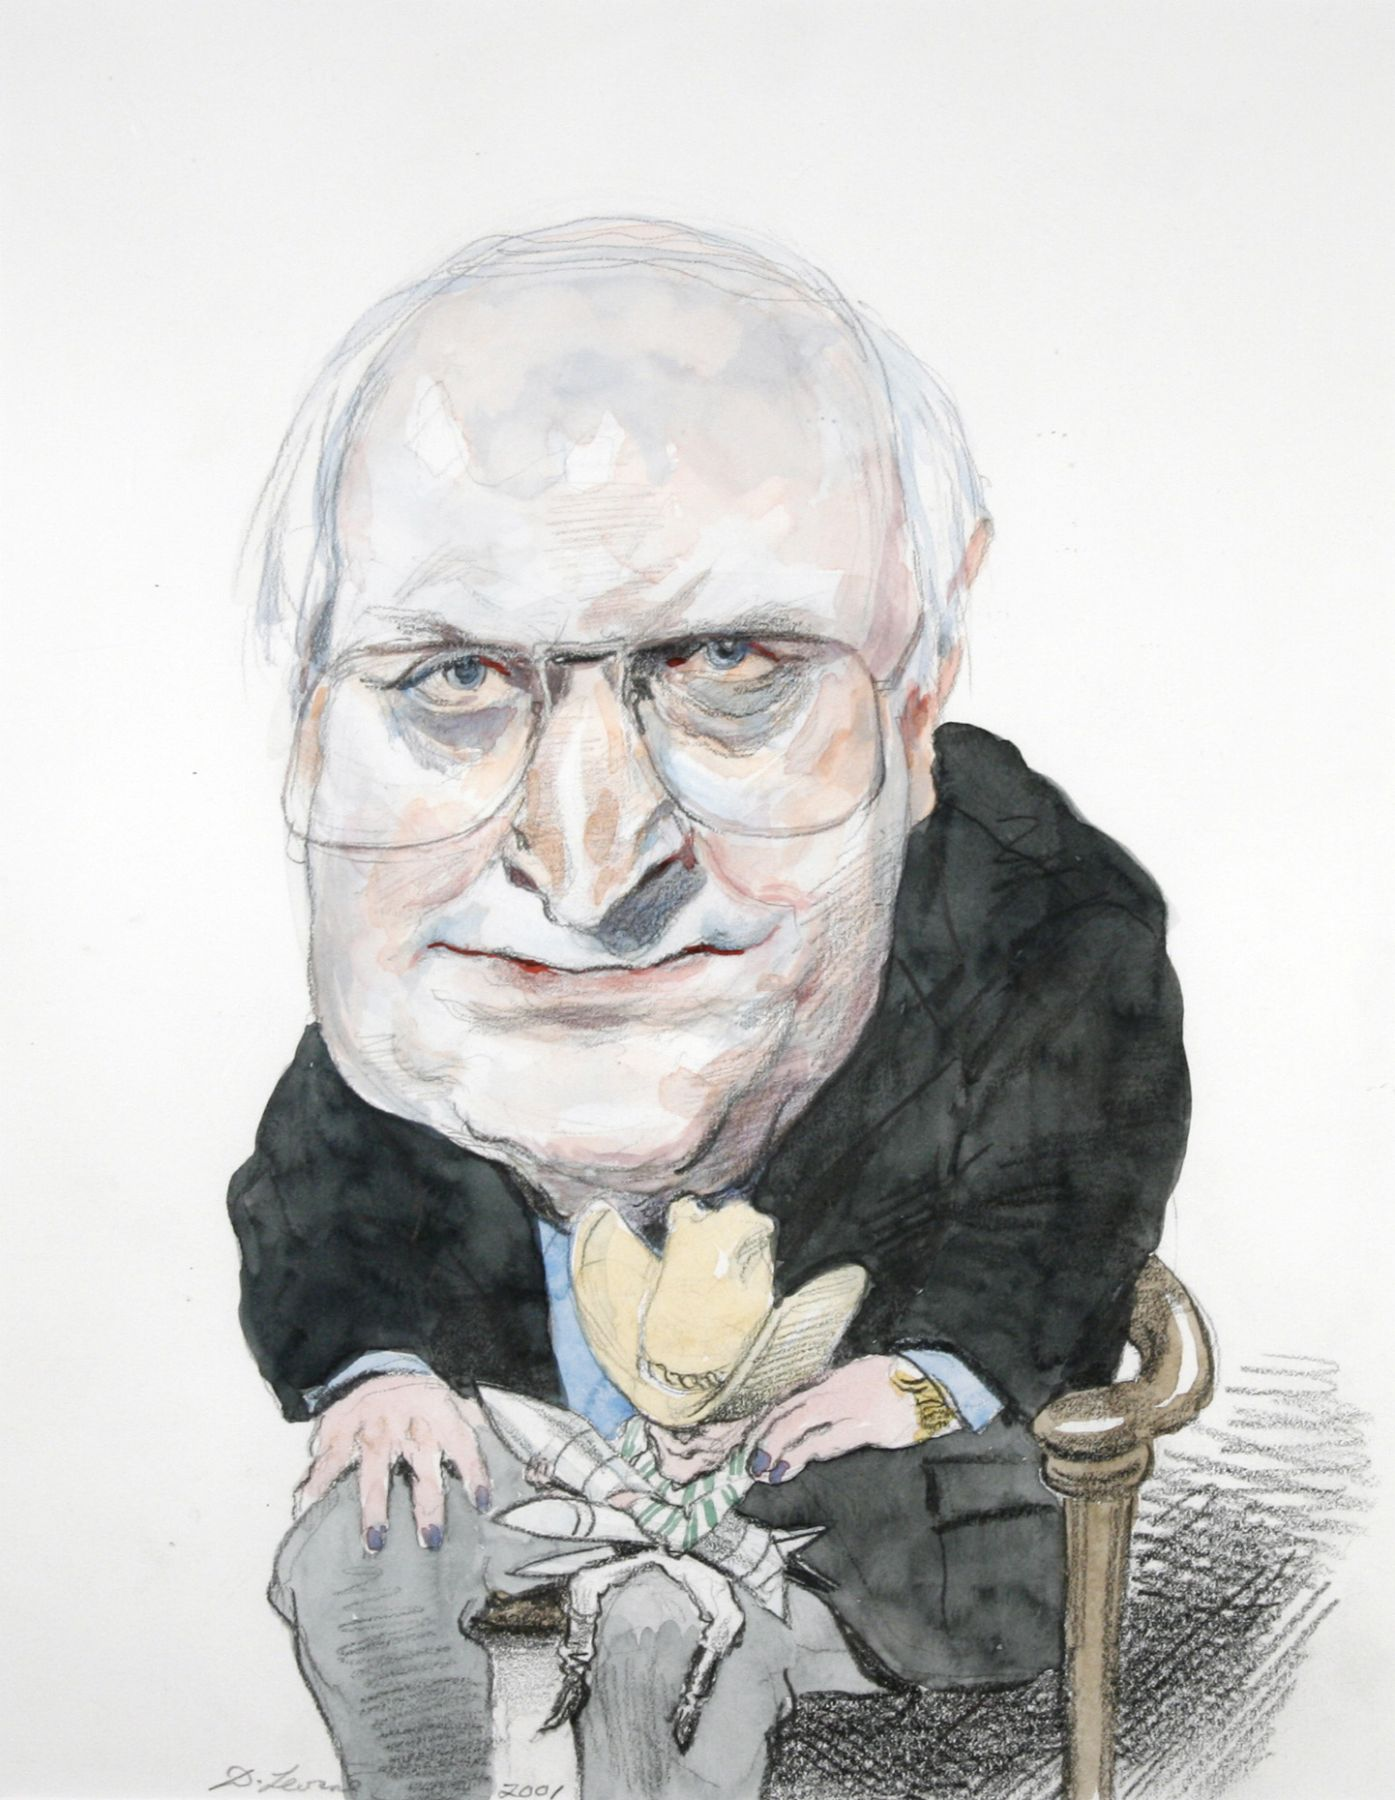 David Levine, Cheney & Bush, 2001, watercolor and pencil on paper, 14 x 11 inches